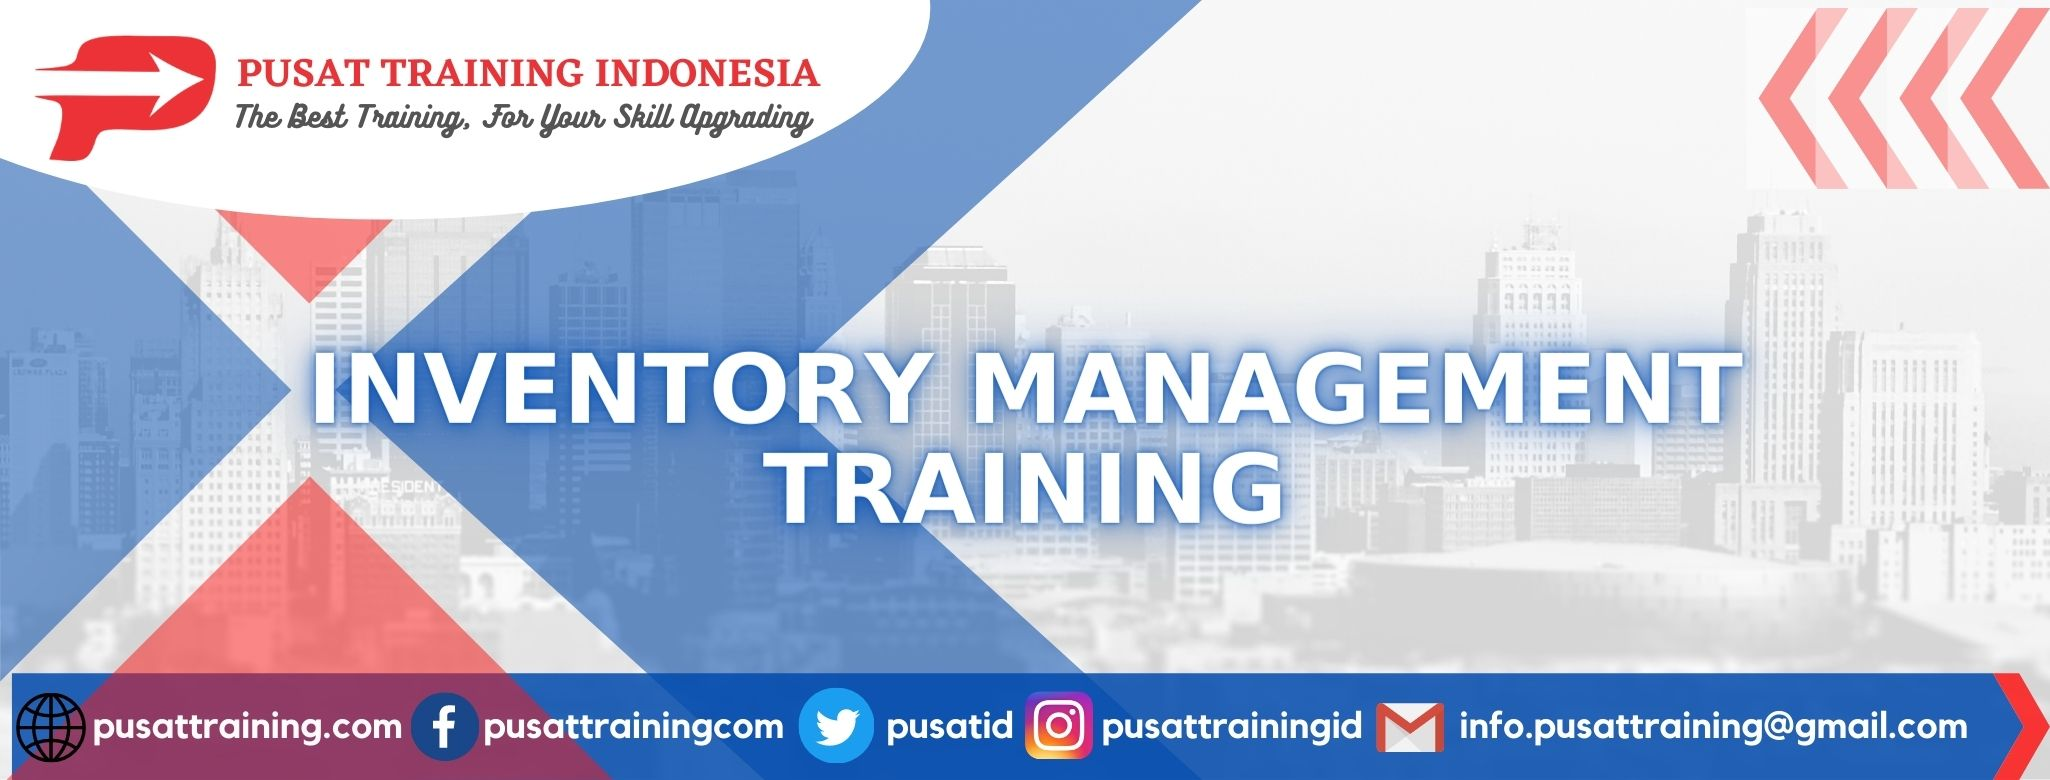 inventory-management-training